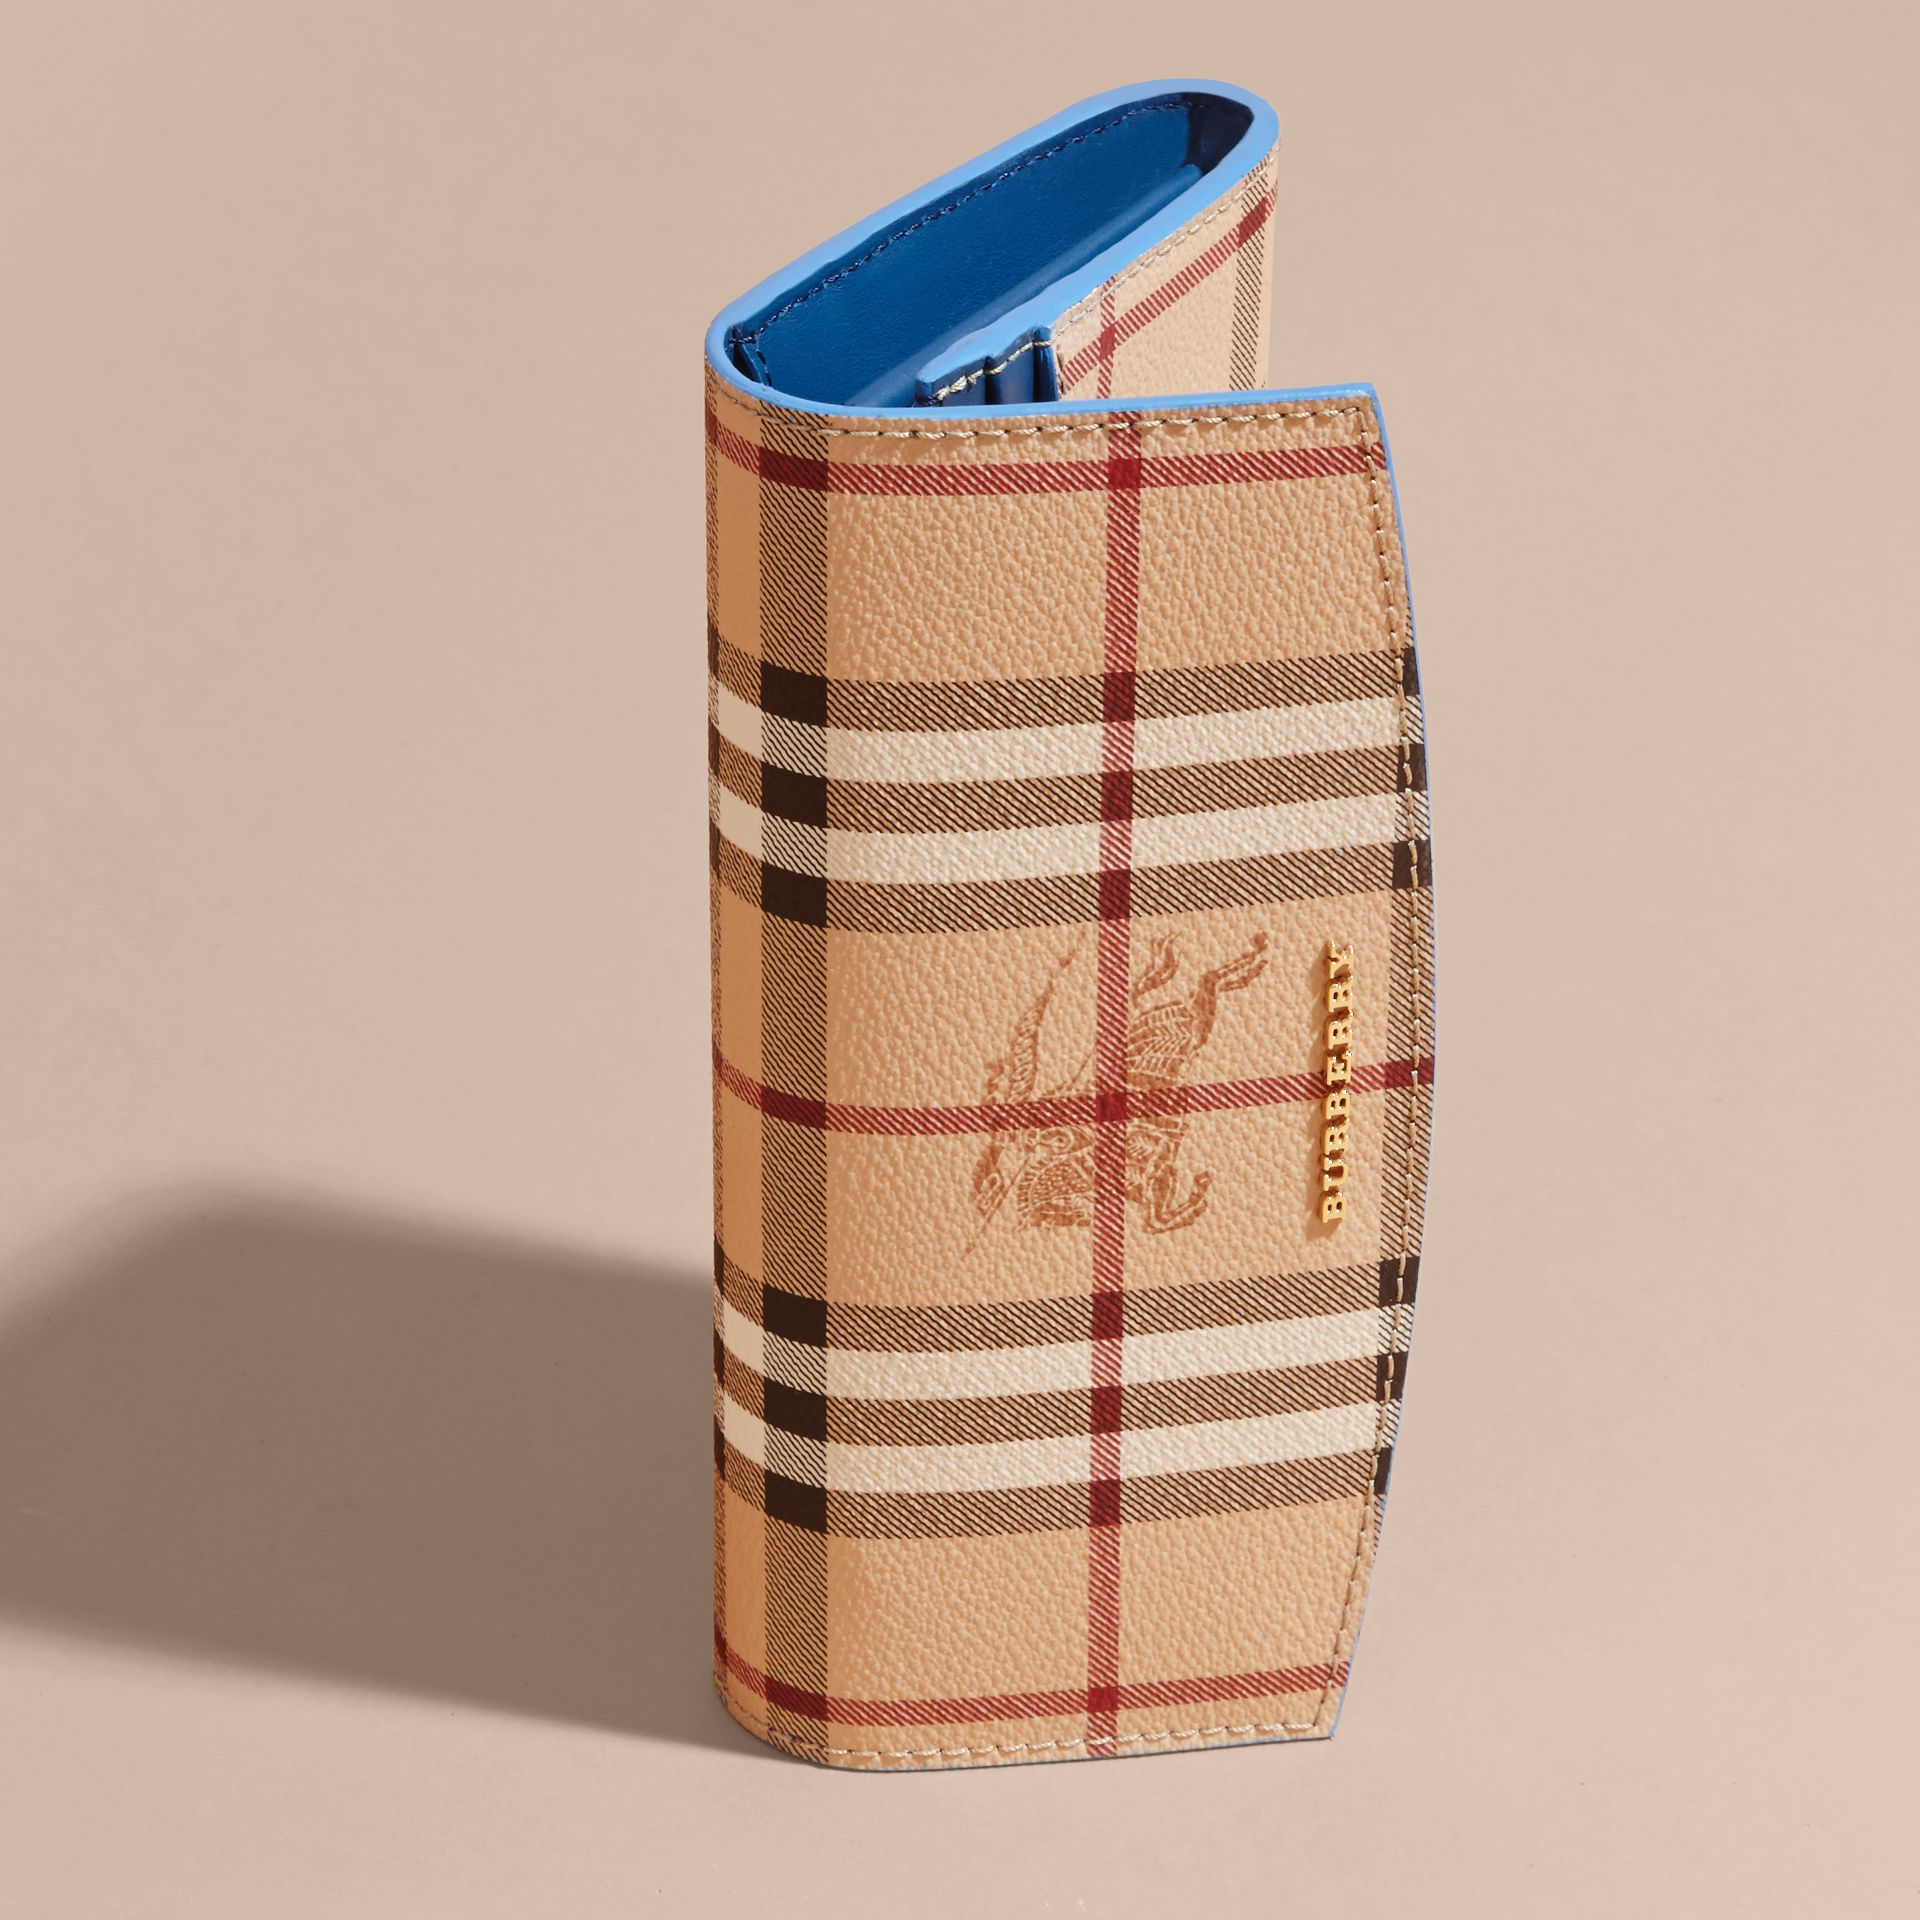 Haymarket Check and Leather Continental Wallet in Mineral Blue - Women | Burberry Singapore - gallery image 3